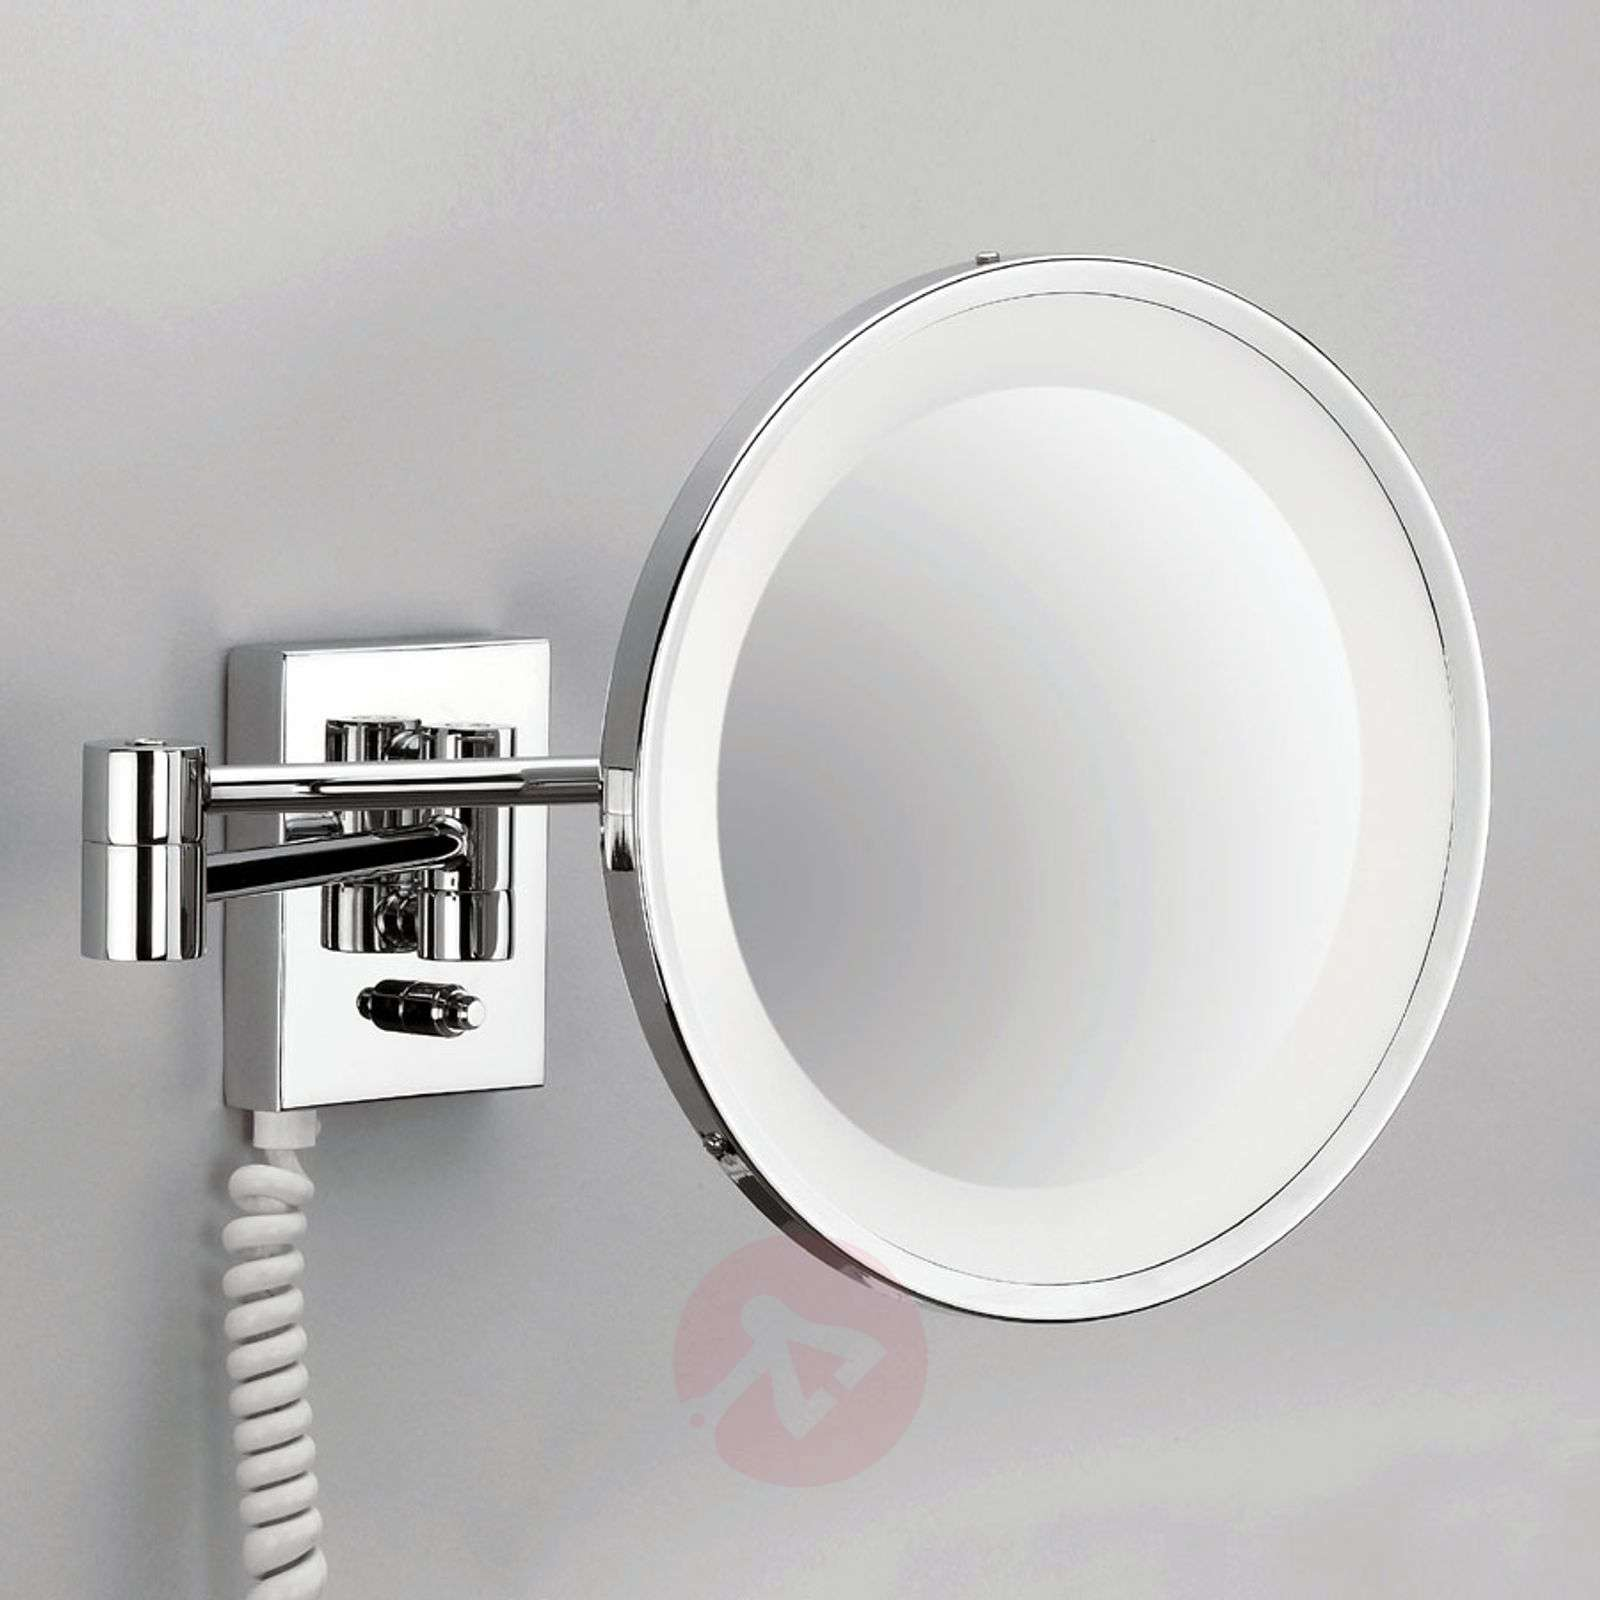 POINT illuminated cosmetic wall mirror, chrome-2504194-01